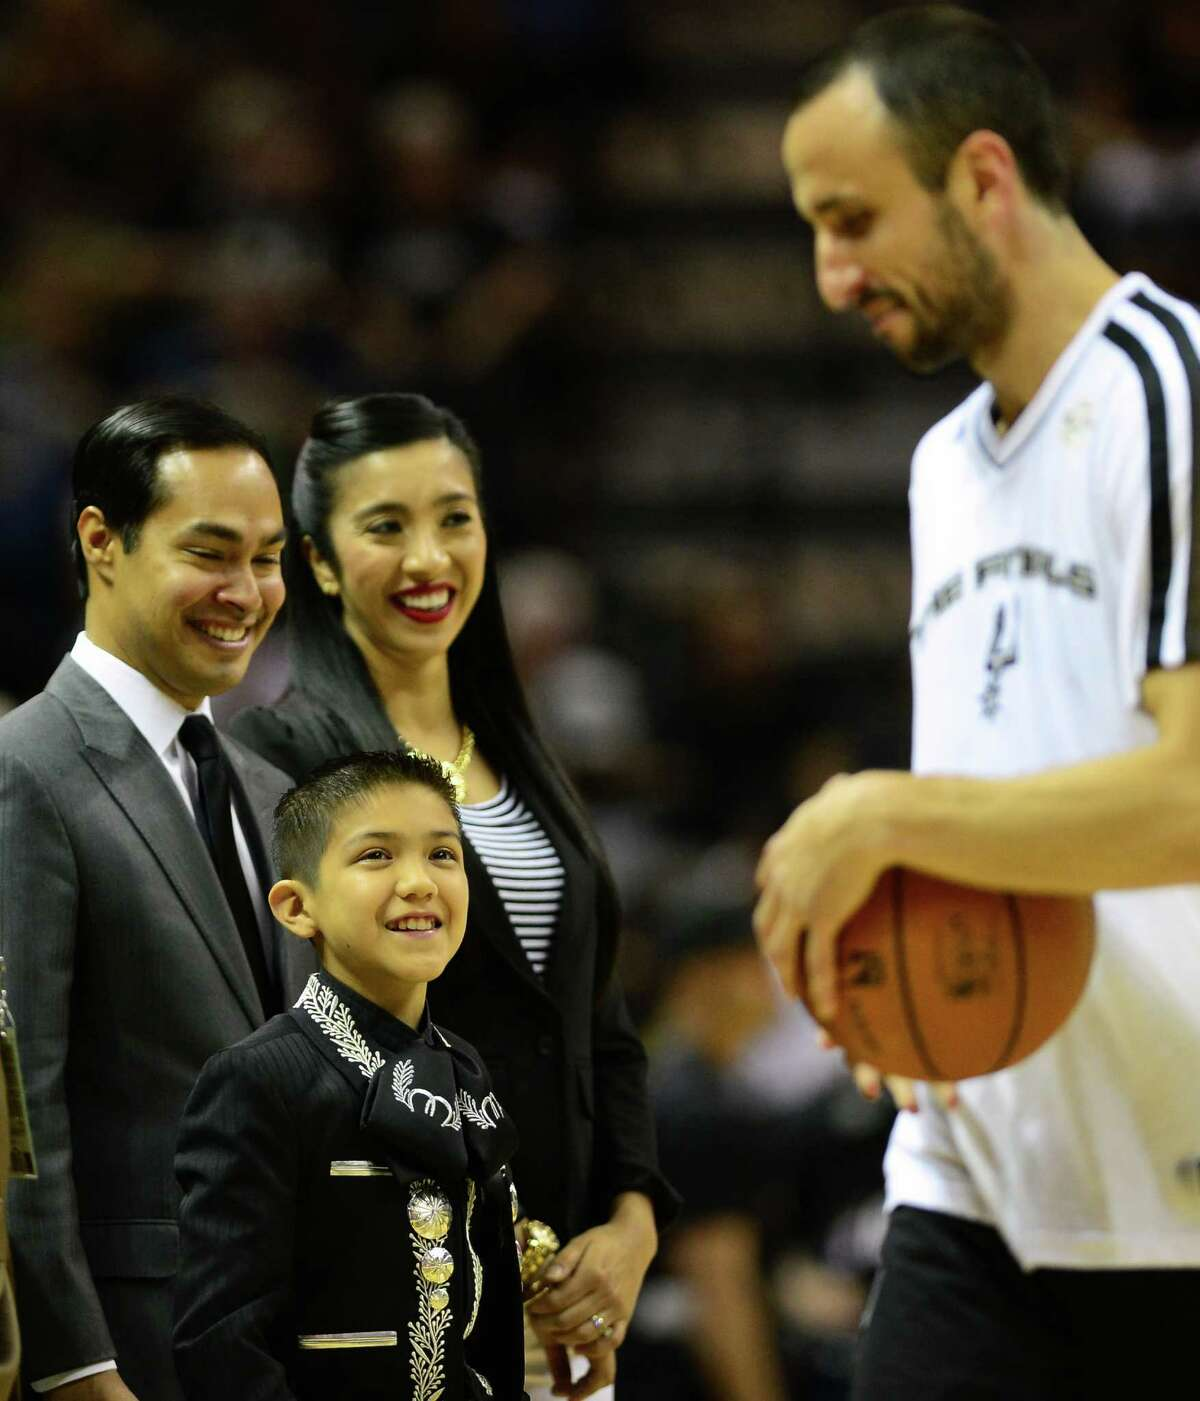 Sebastien De La Cruz, known as San Antonios Little Mariachi, is all smiles after Manu Ginobili of the San Antonio Spurs went to shake his hand prior to the start of Game 4 of the NBA Finals on June 13, 2013, in San Antonio.